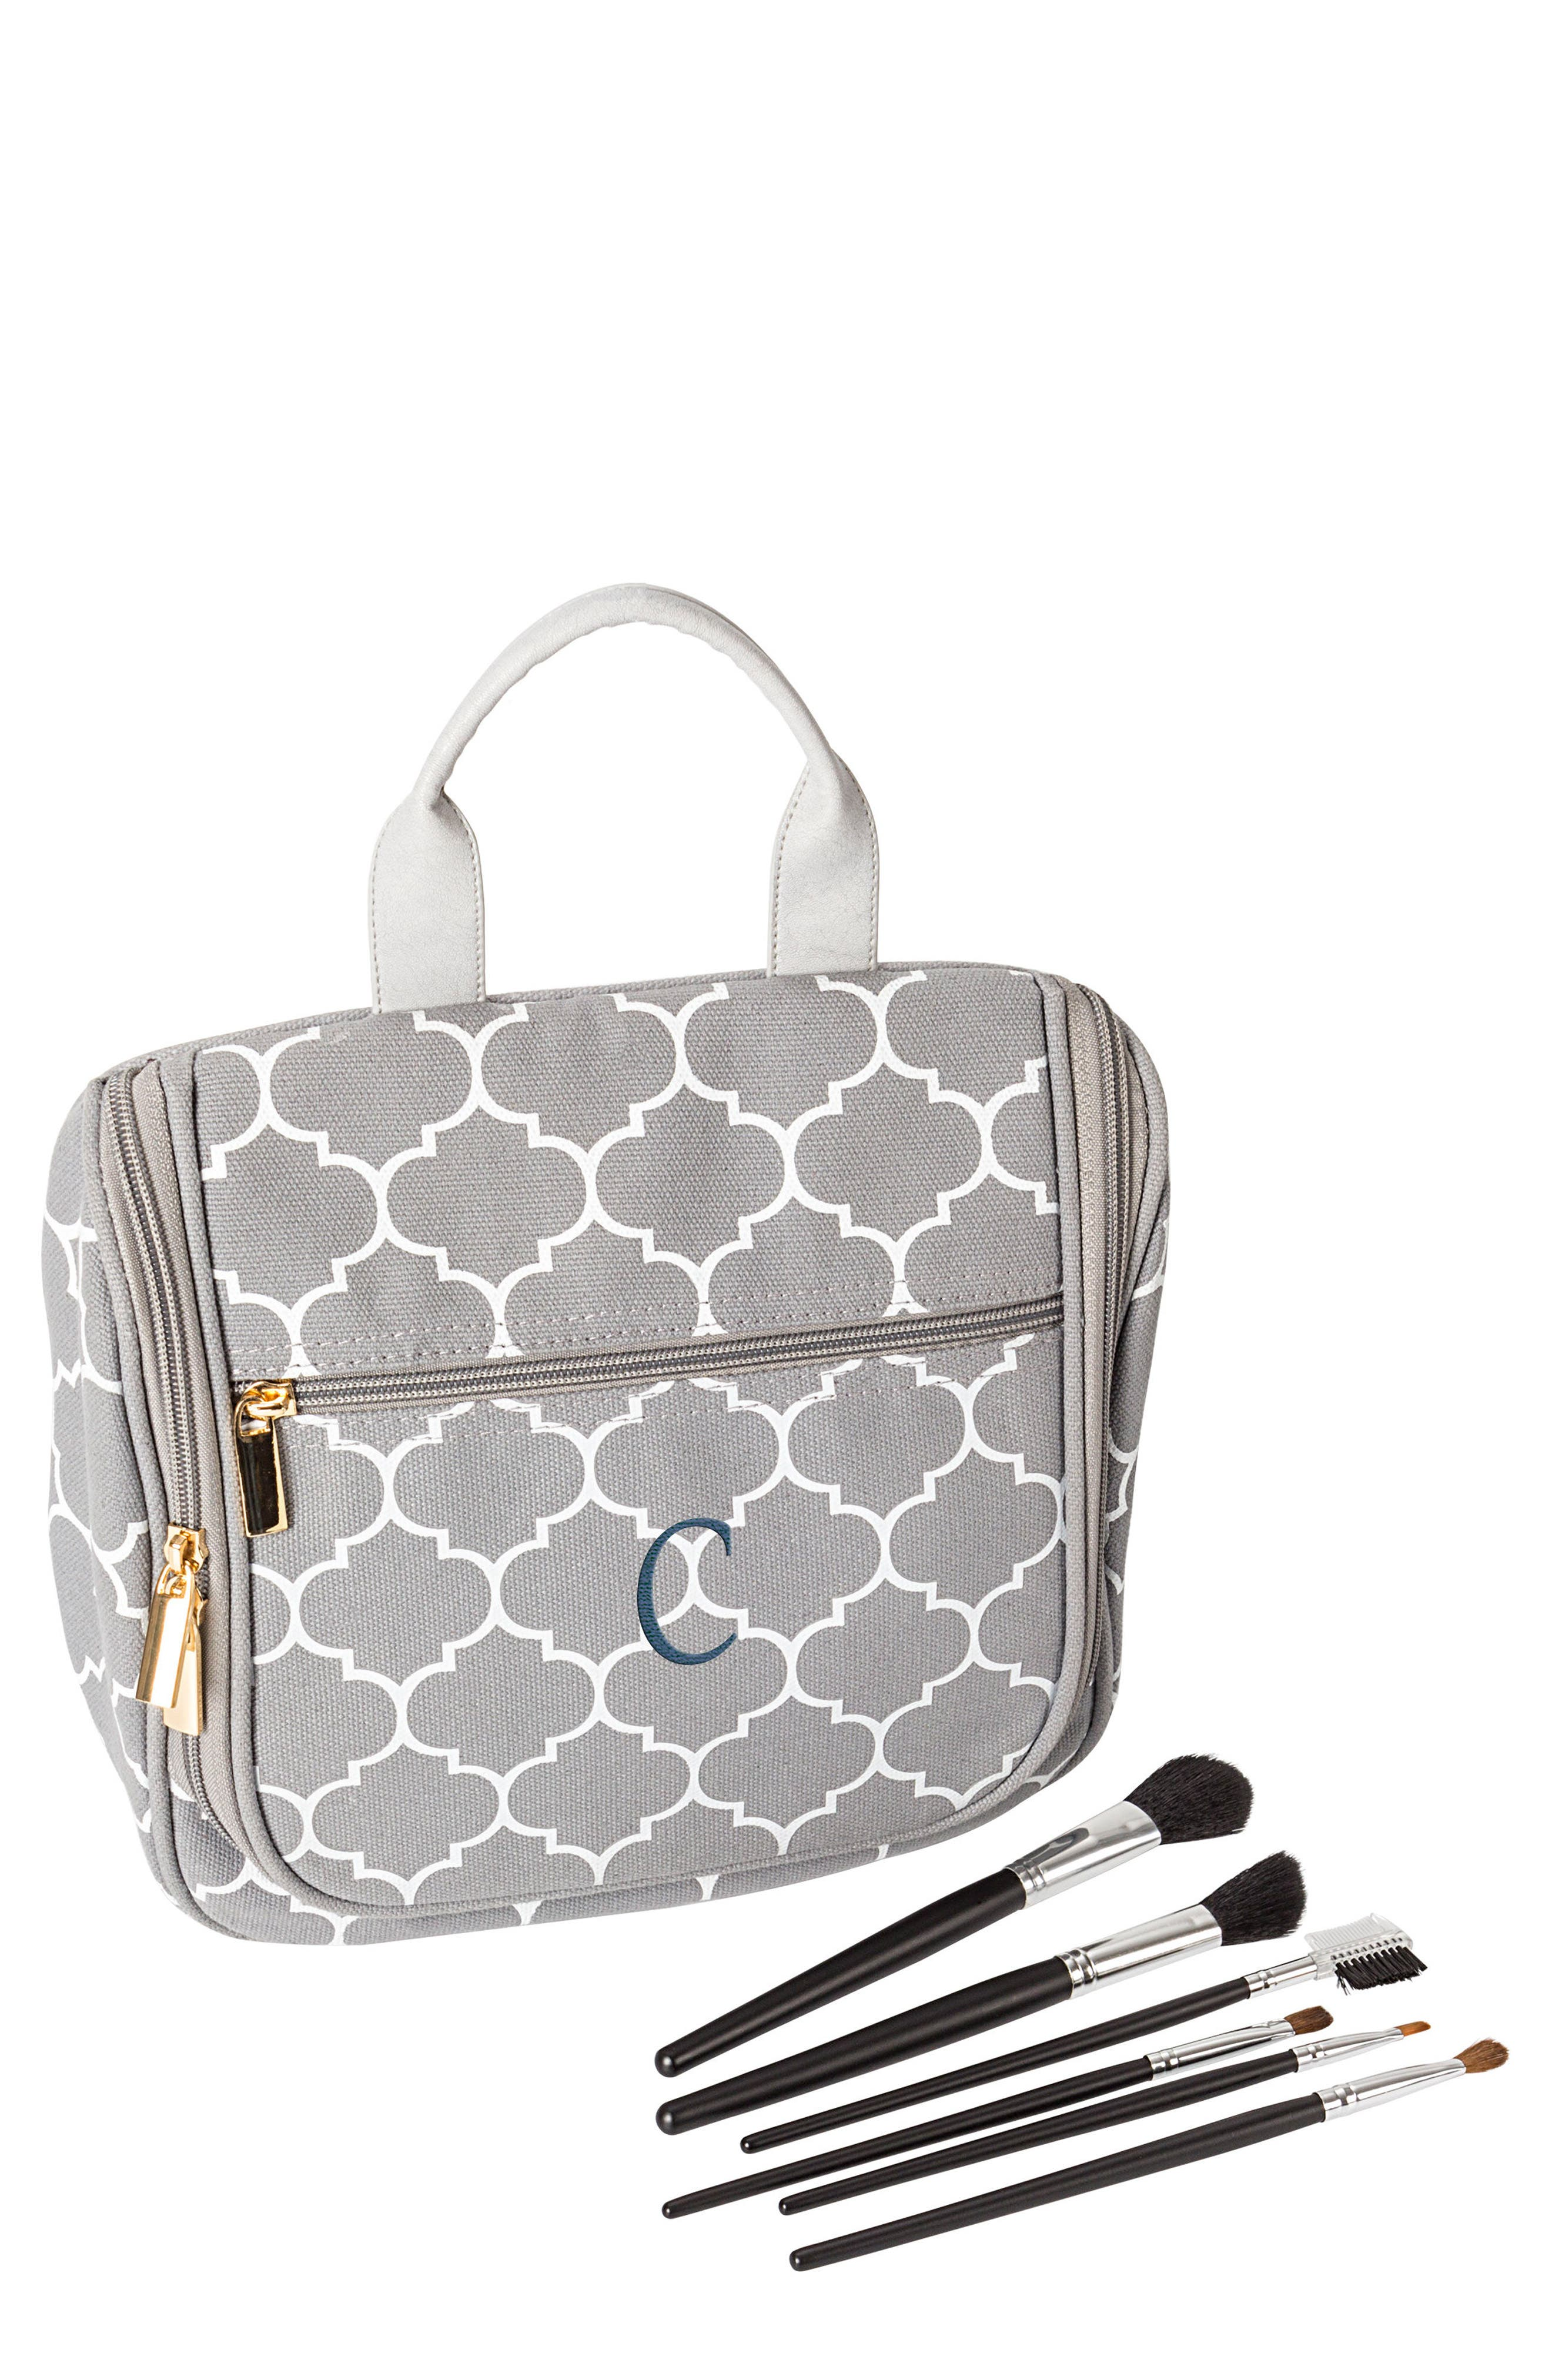 Monogram Travel Kit,                         Main,                         color, Grey-C